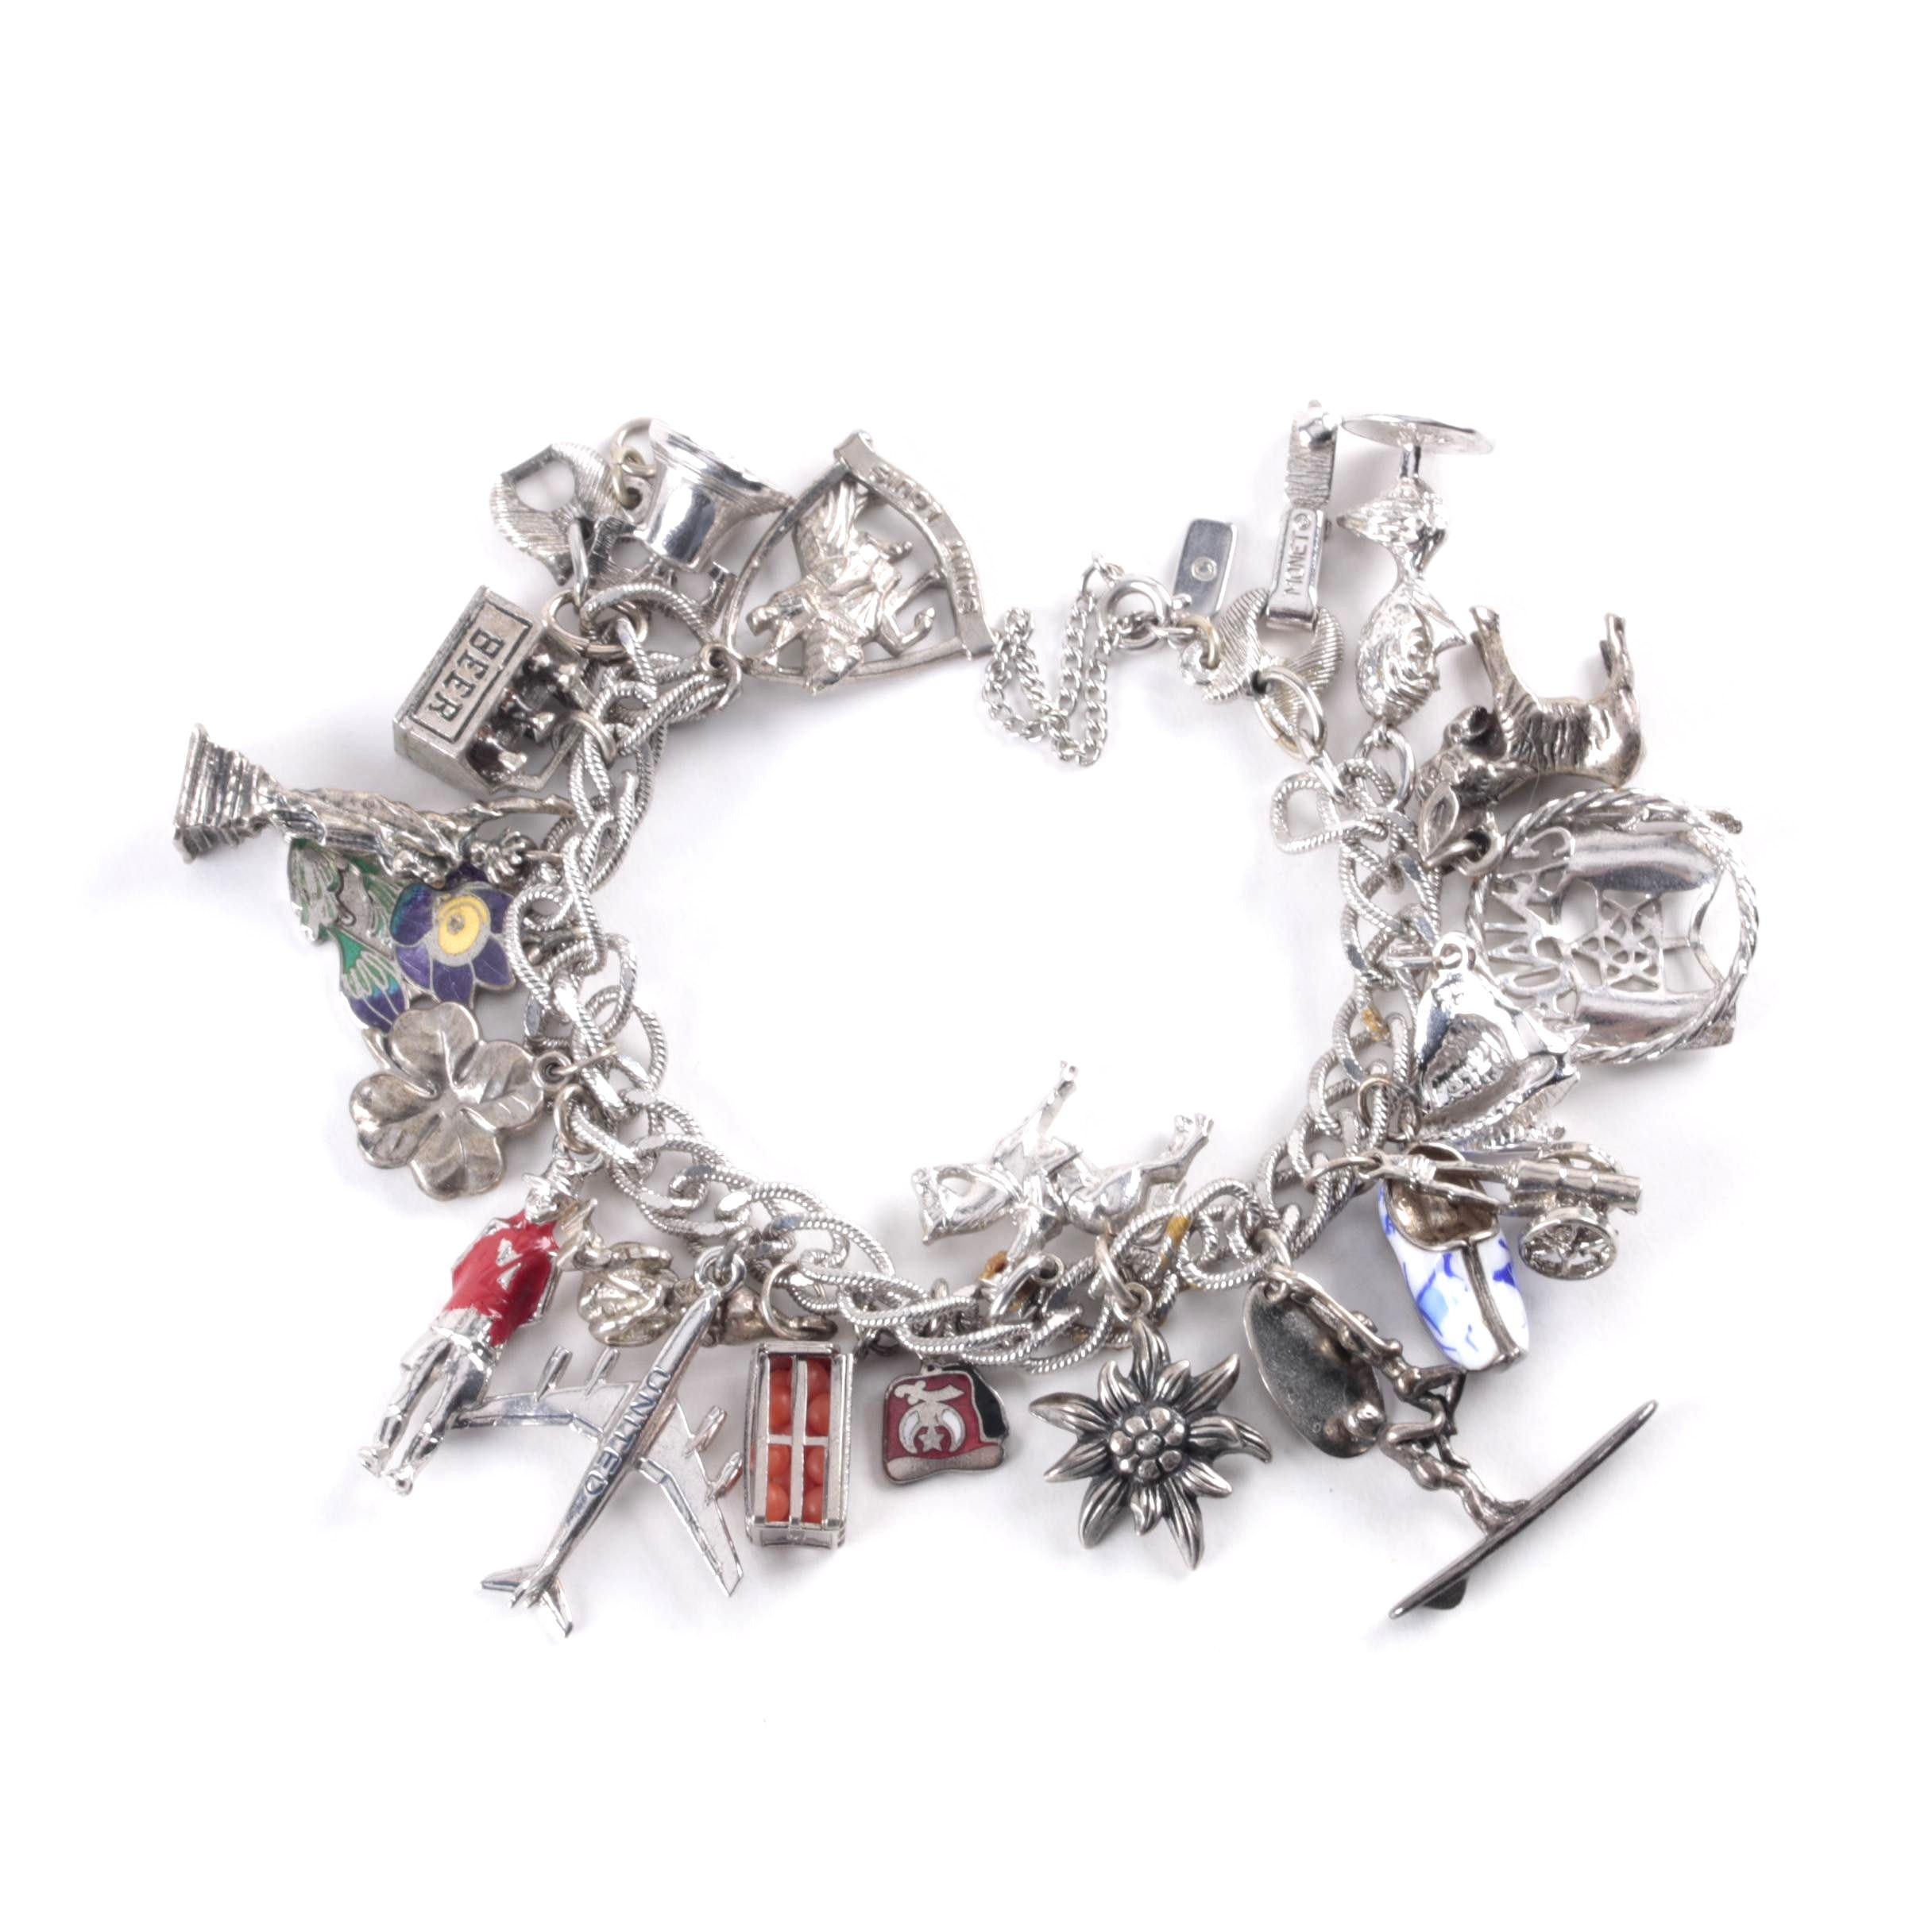 Vintage Monet Charm Bracelet with Sterling Silver Charms